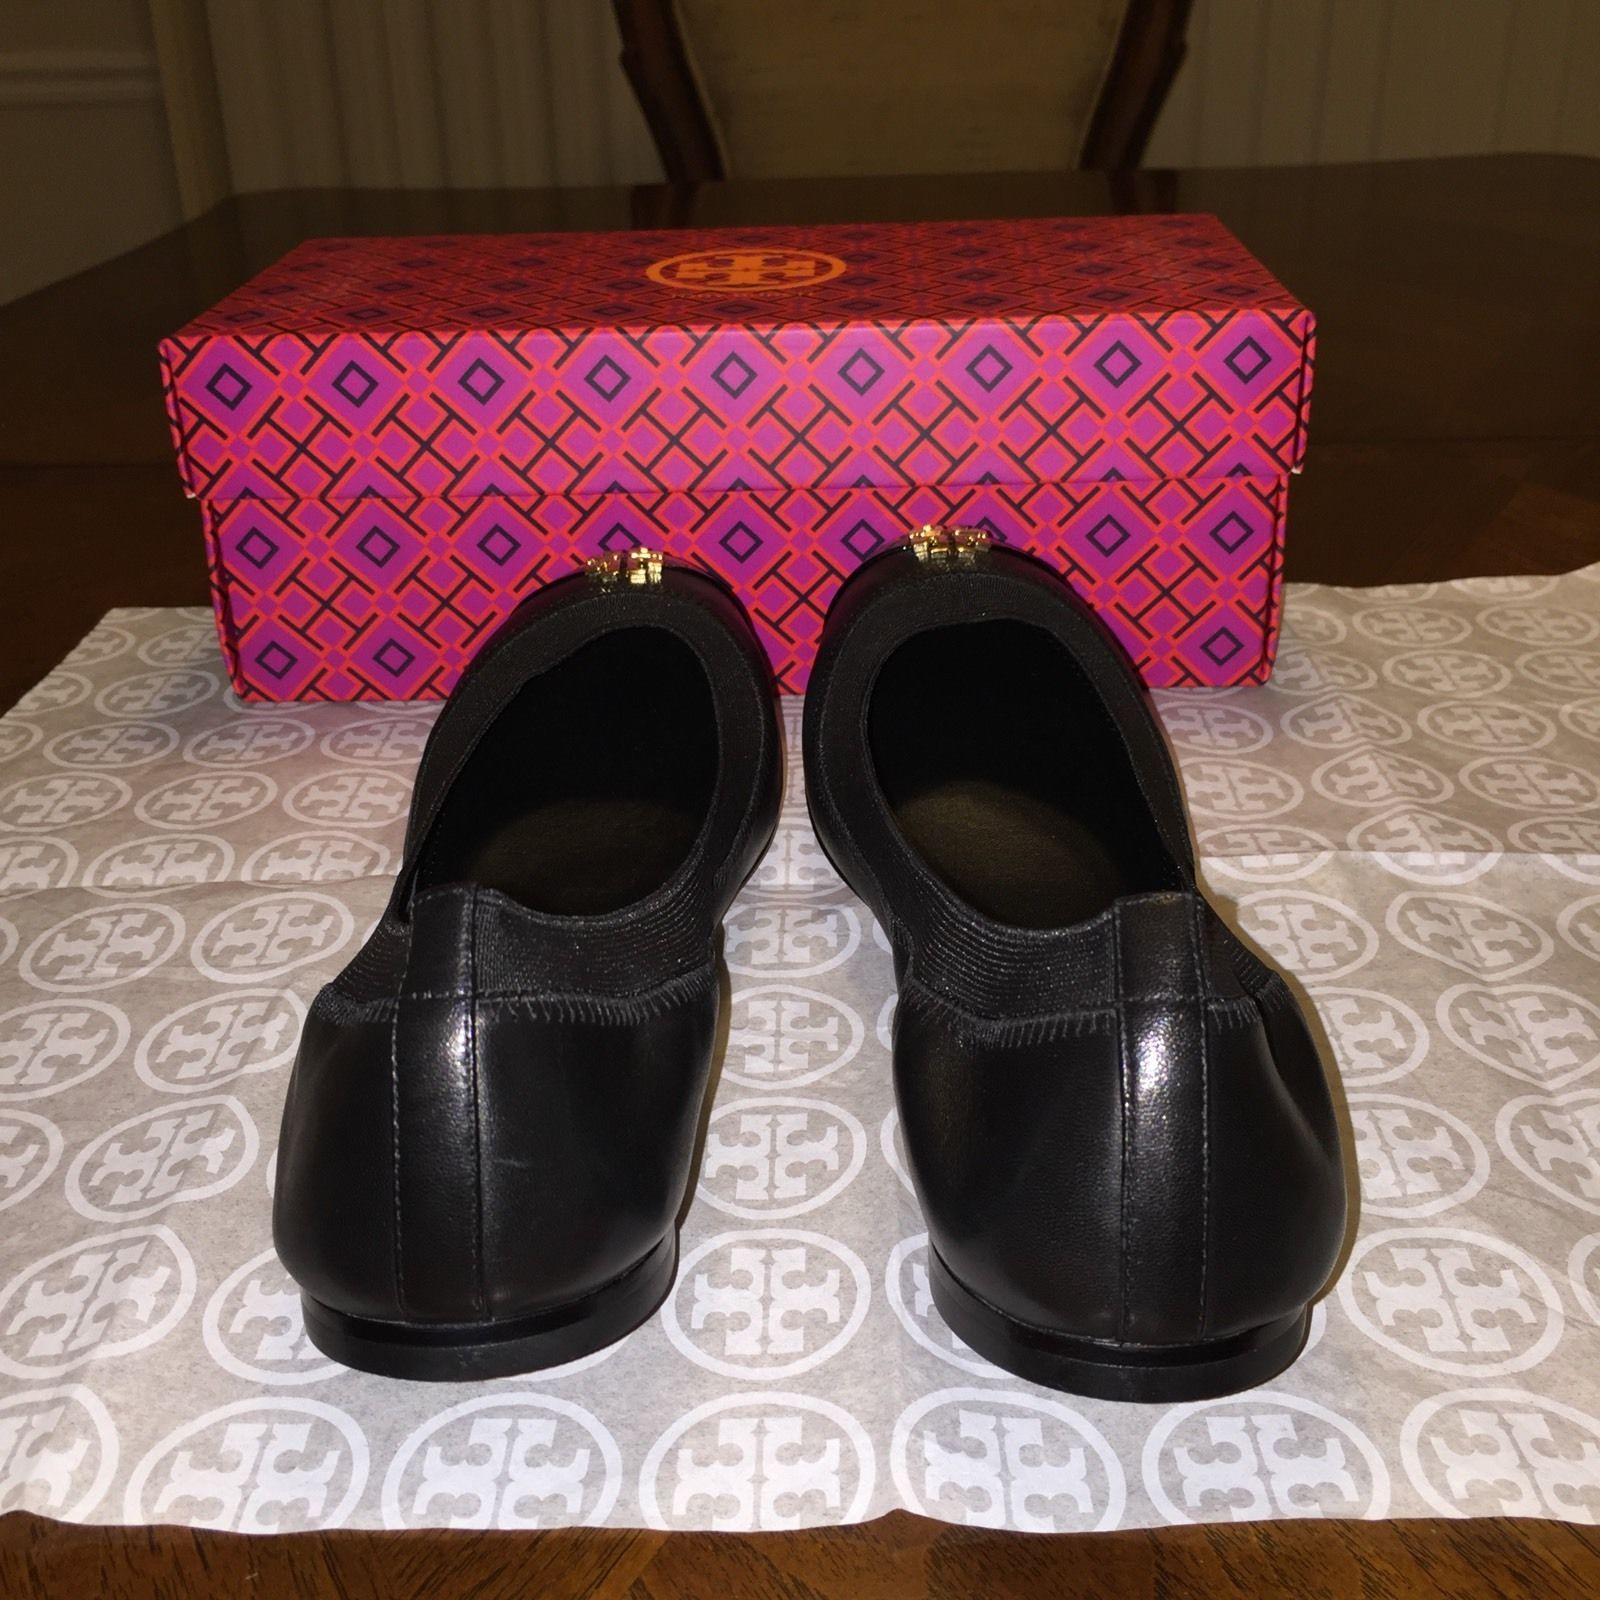 NIB Tory Burch Jolie Ballet Flat Size 9 in Black